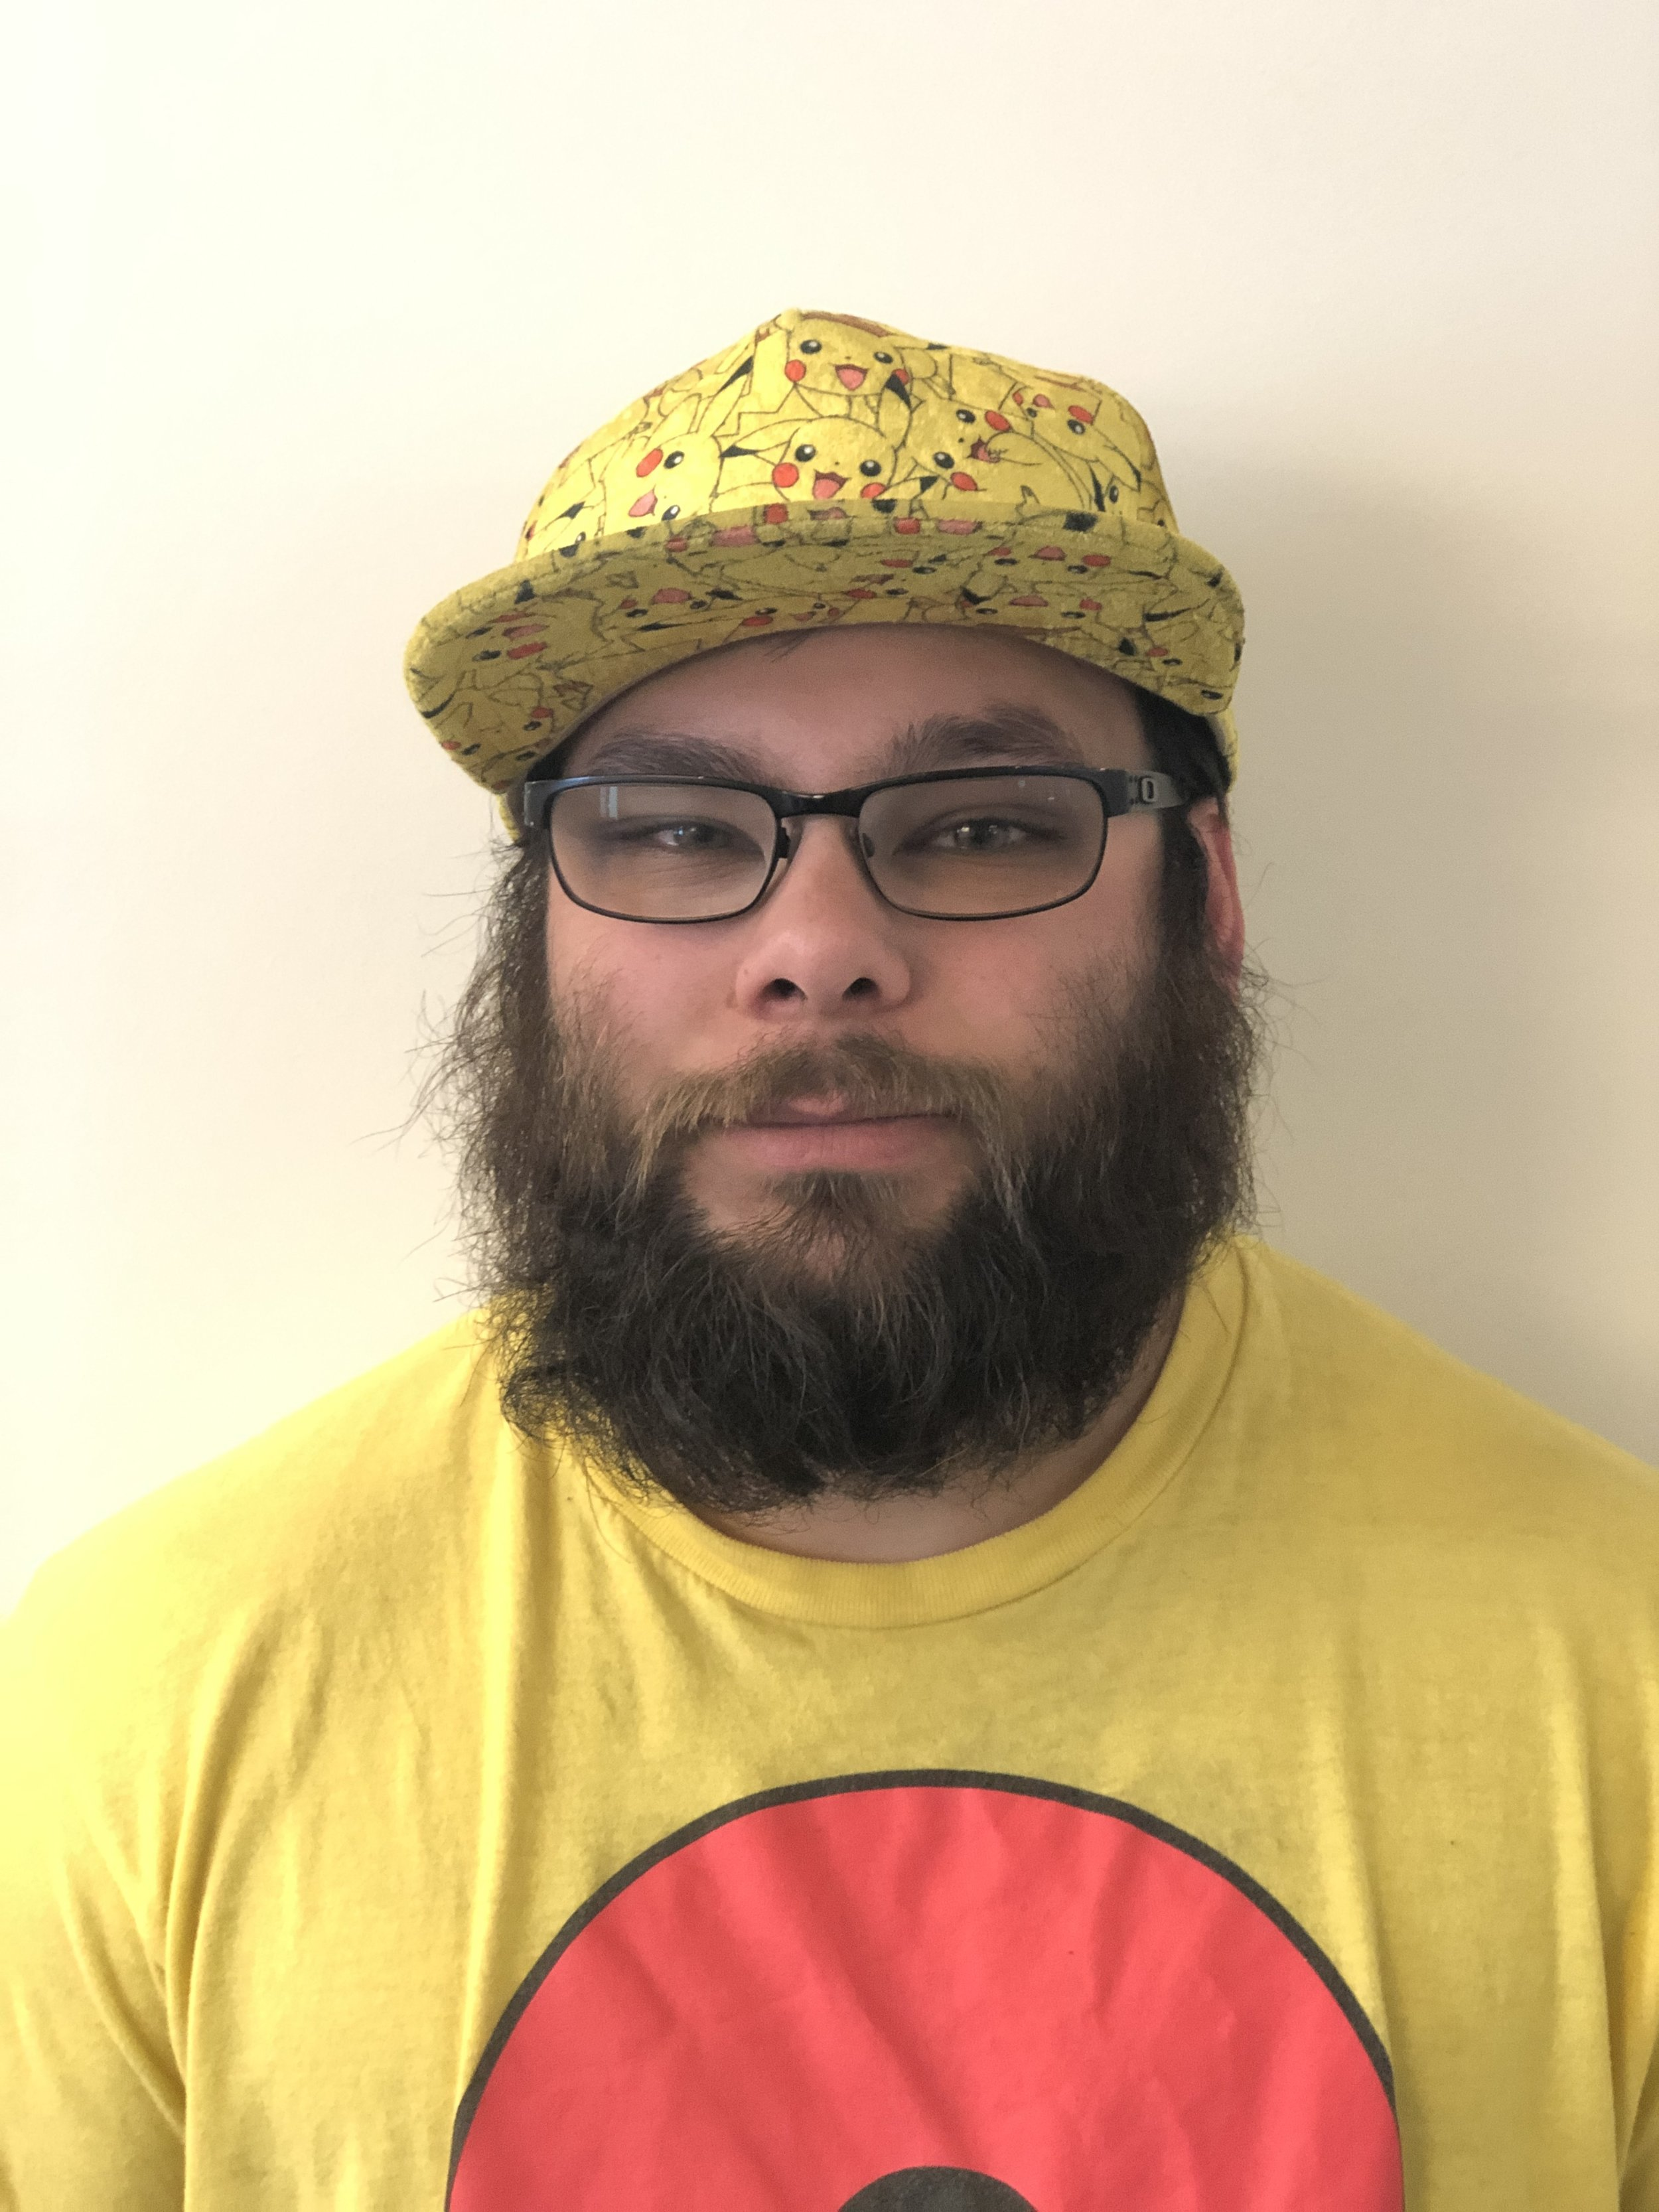 Portrait of Tino wearing a yellow baseball hat with a Pikachu pattern and a matching yellow t-shirt.